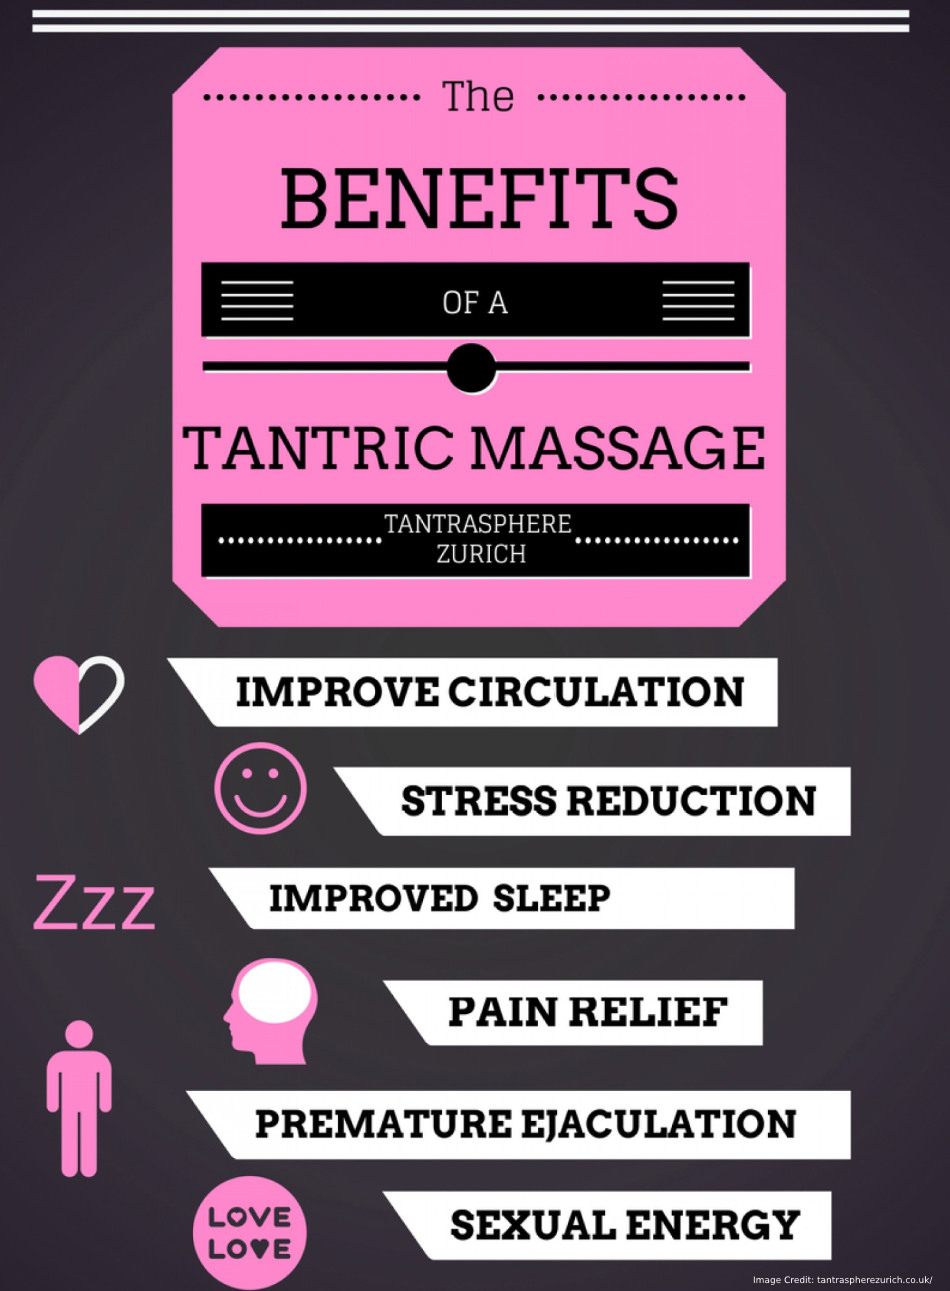 Benefit Of Tantra Massage Info